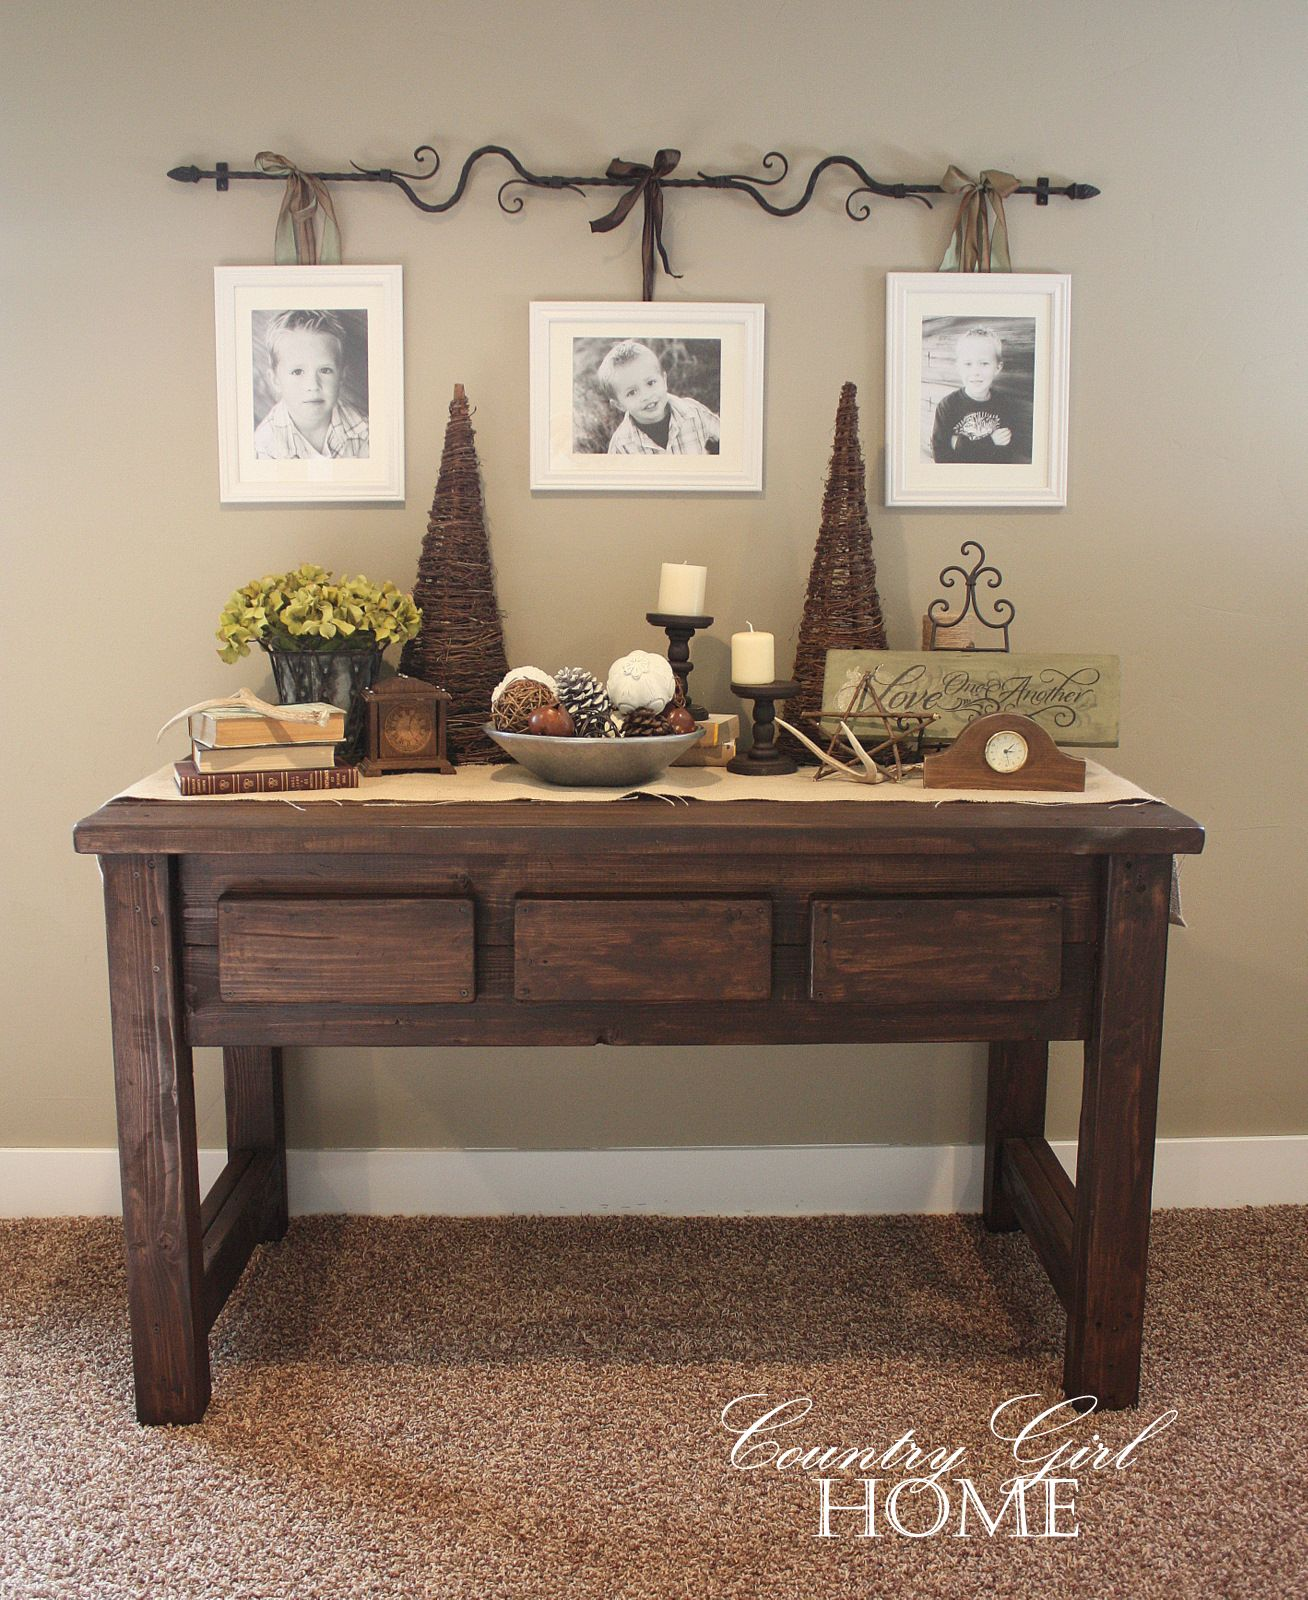 Hang family pictures from a curtain rodso want this table country girl home my new hand crafted sofa table plus i love the idea of using a curtain rod to hang pictures geotapseo Gallery